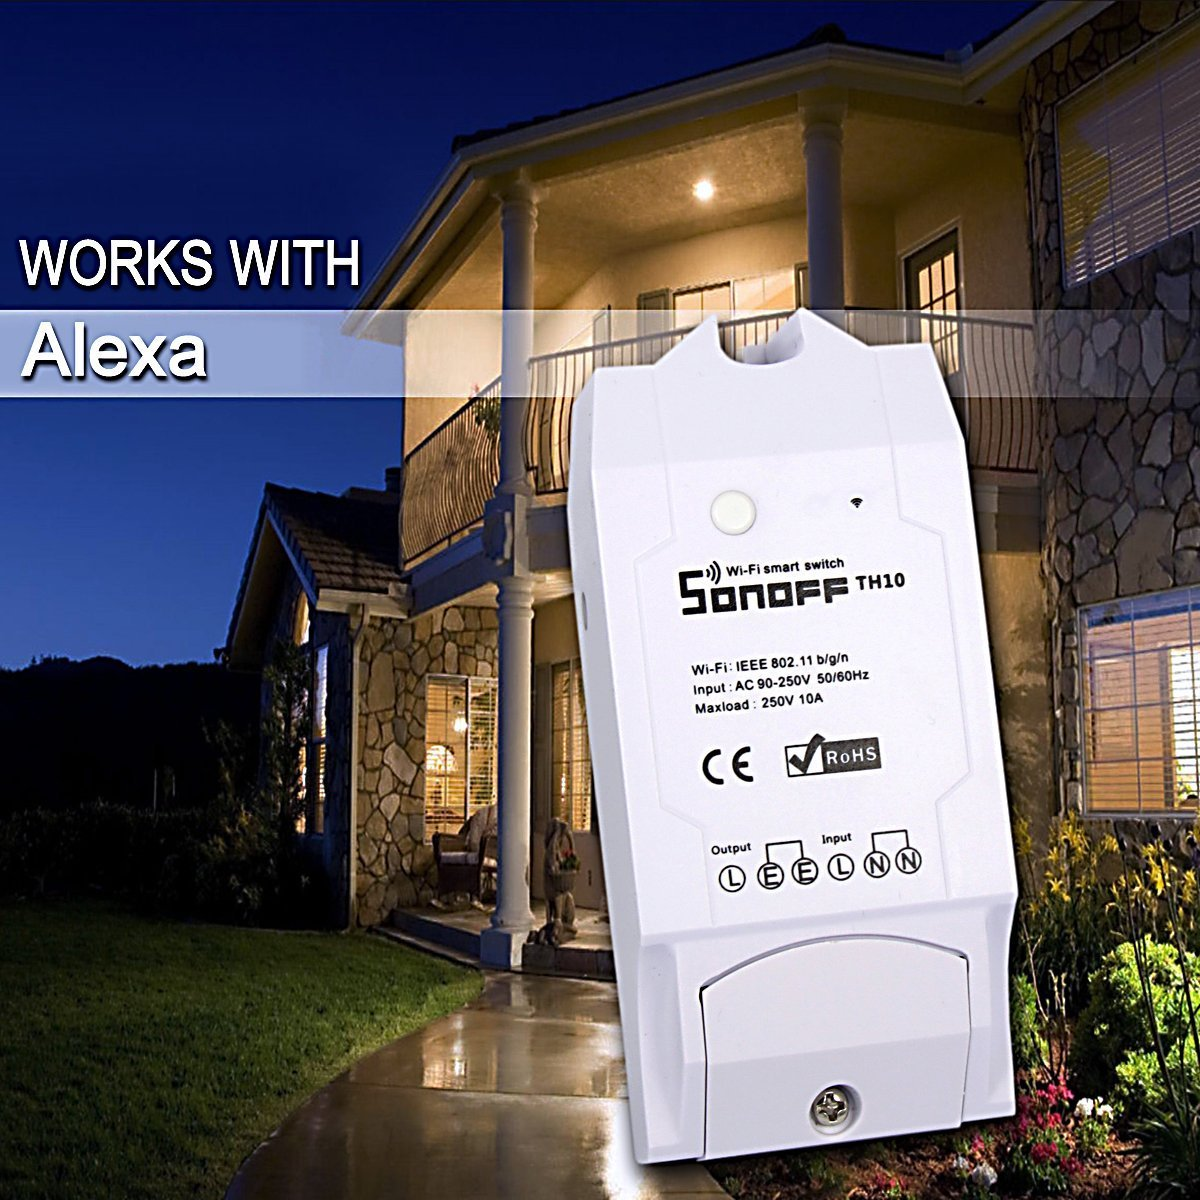 Sonoff TH10 Switch - 10A Temperature and Humidity Monitoring WiFi Smart Switch for DIY Smart Home